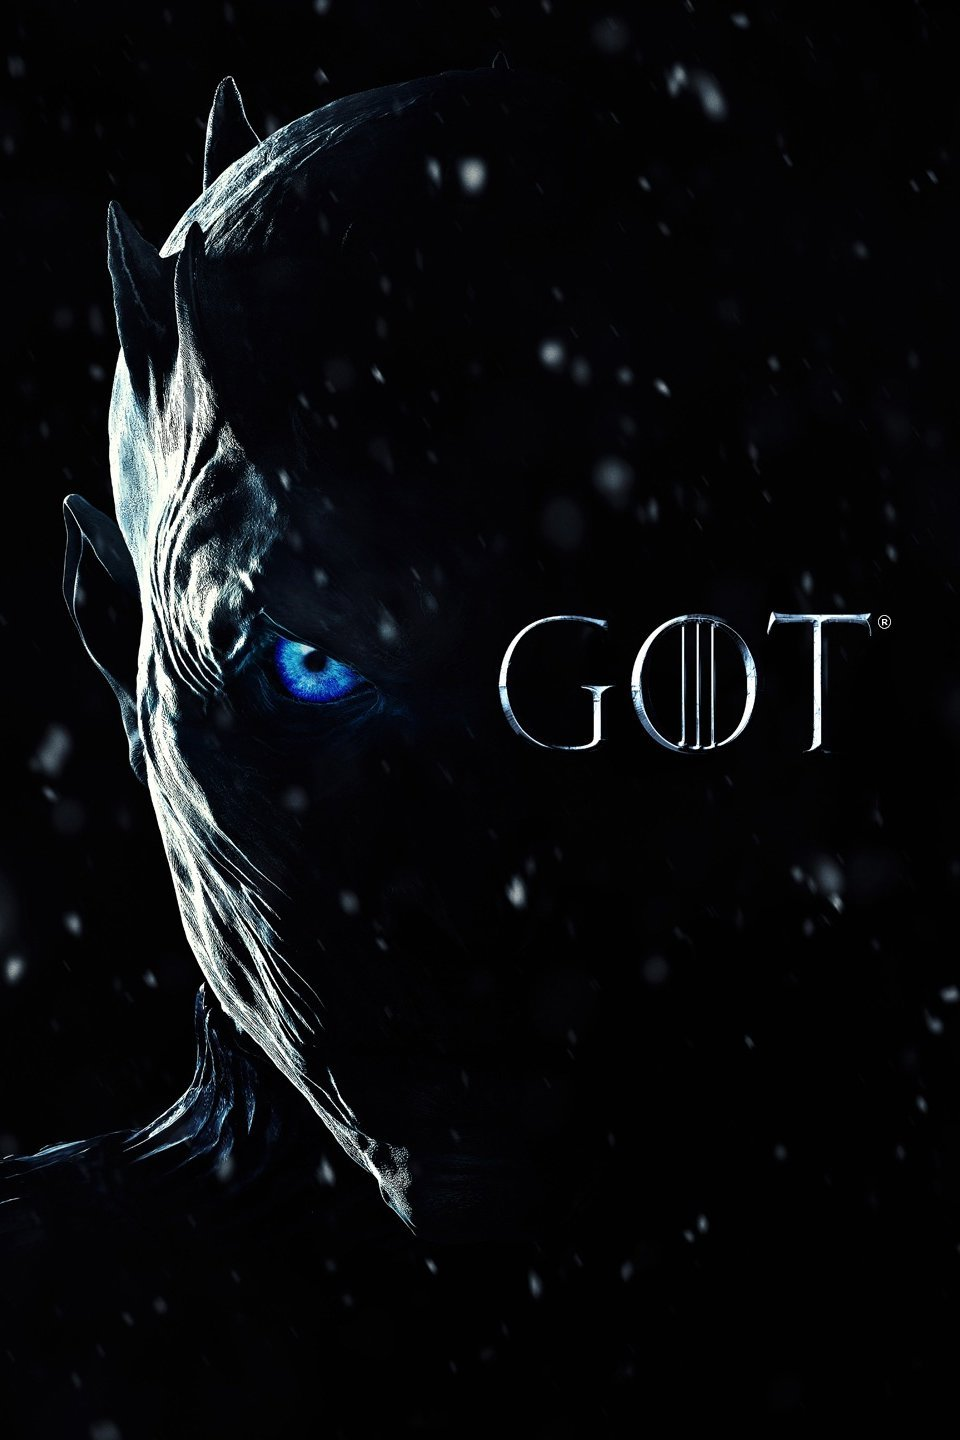 Game Of Thrones S07E01 720p WEBRip x265 HEVC 160MB